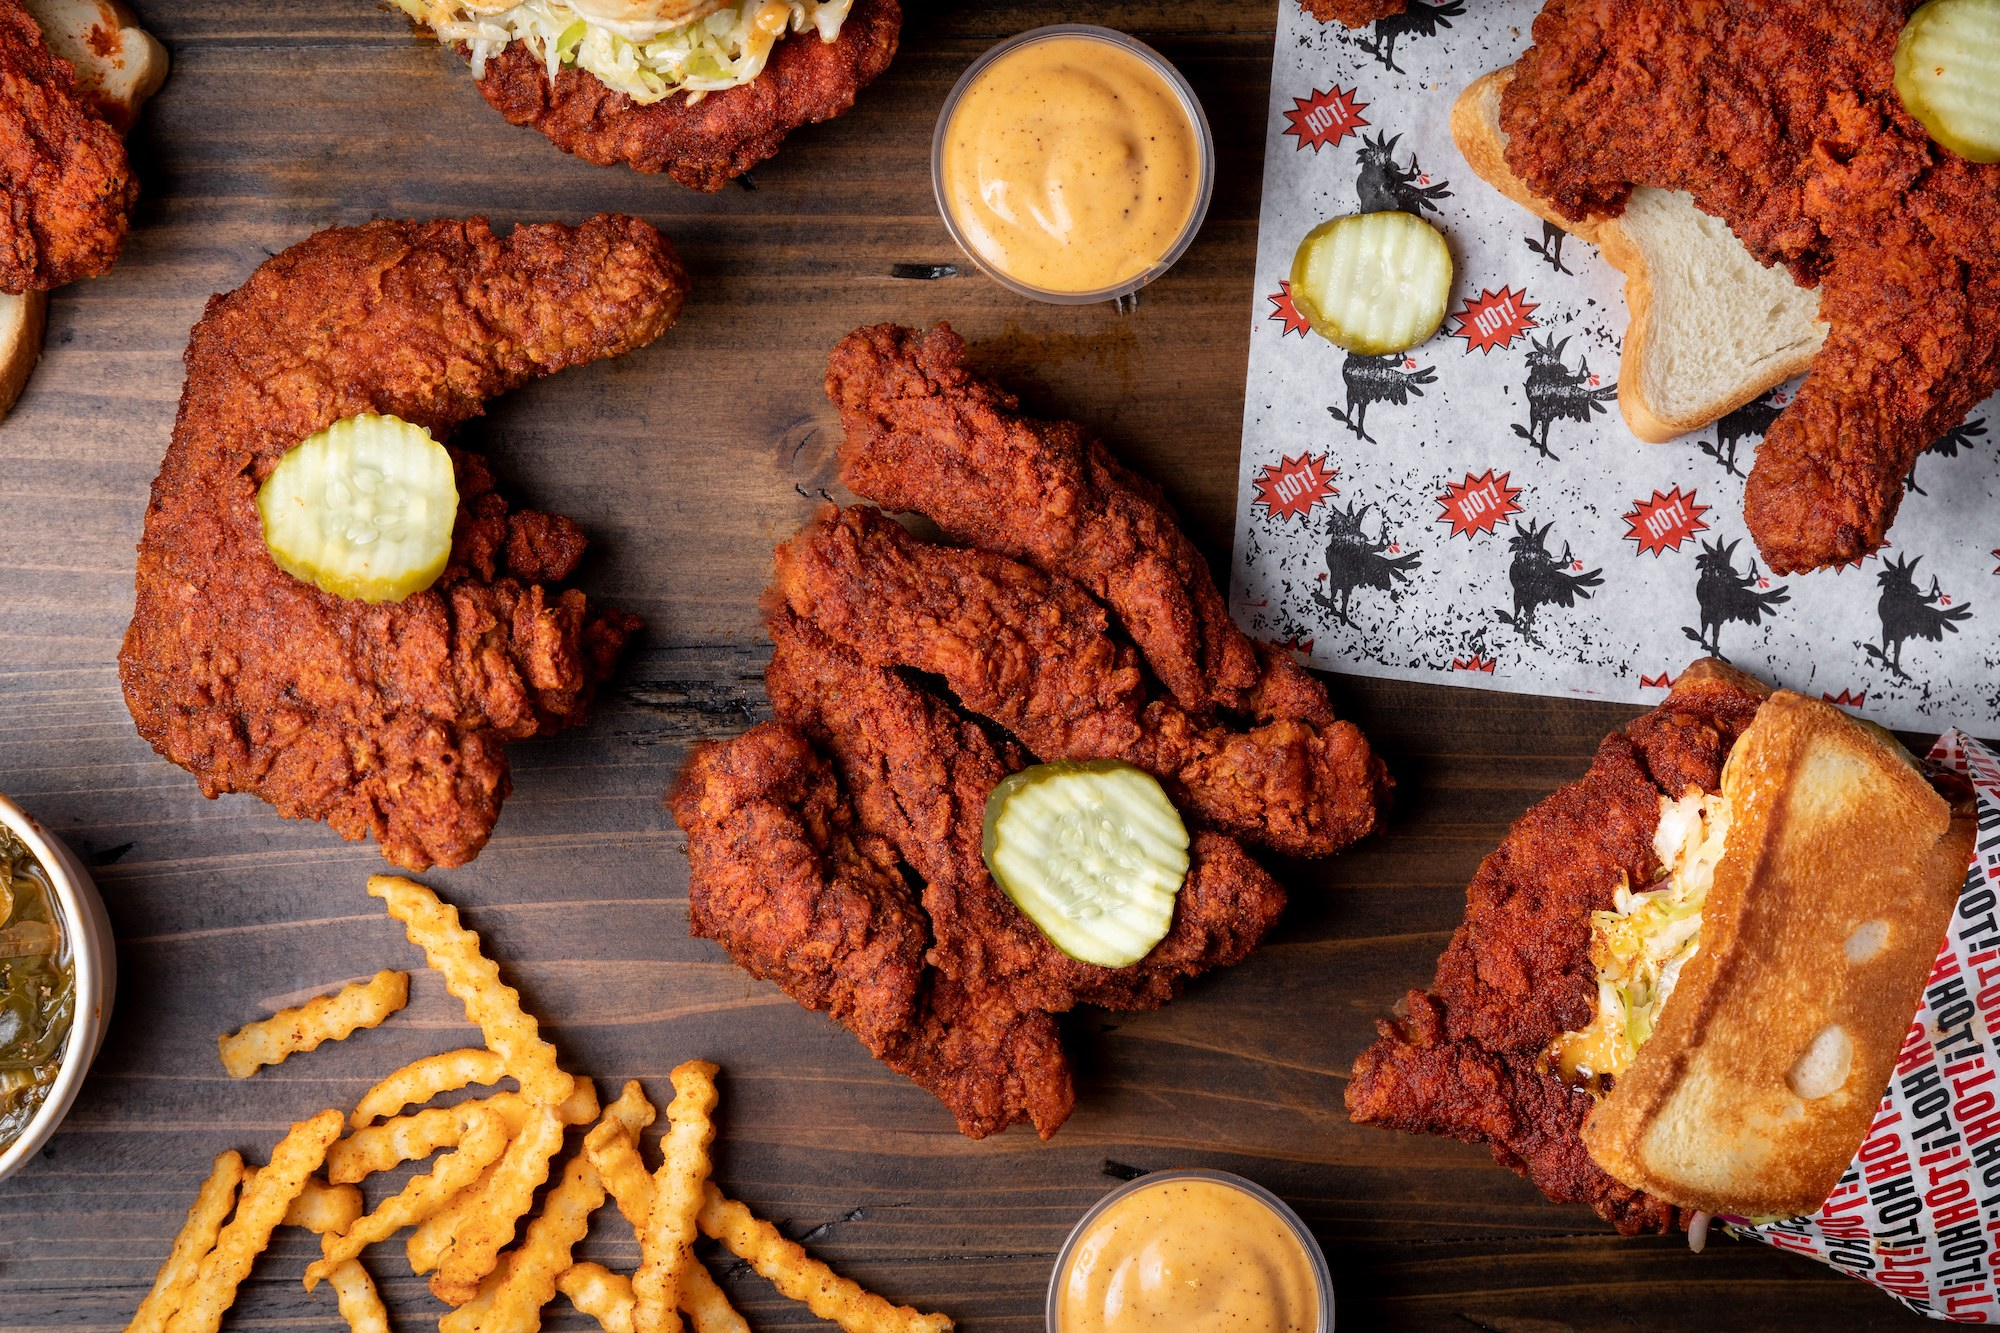 A spread out collection of hot chicken, fries, and sauces from Howlin' Ray's.